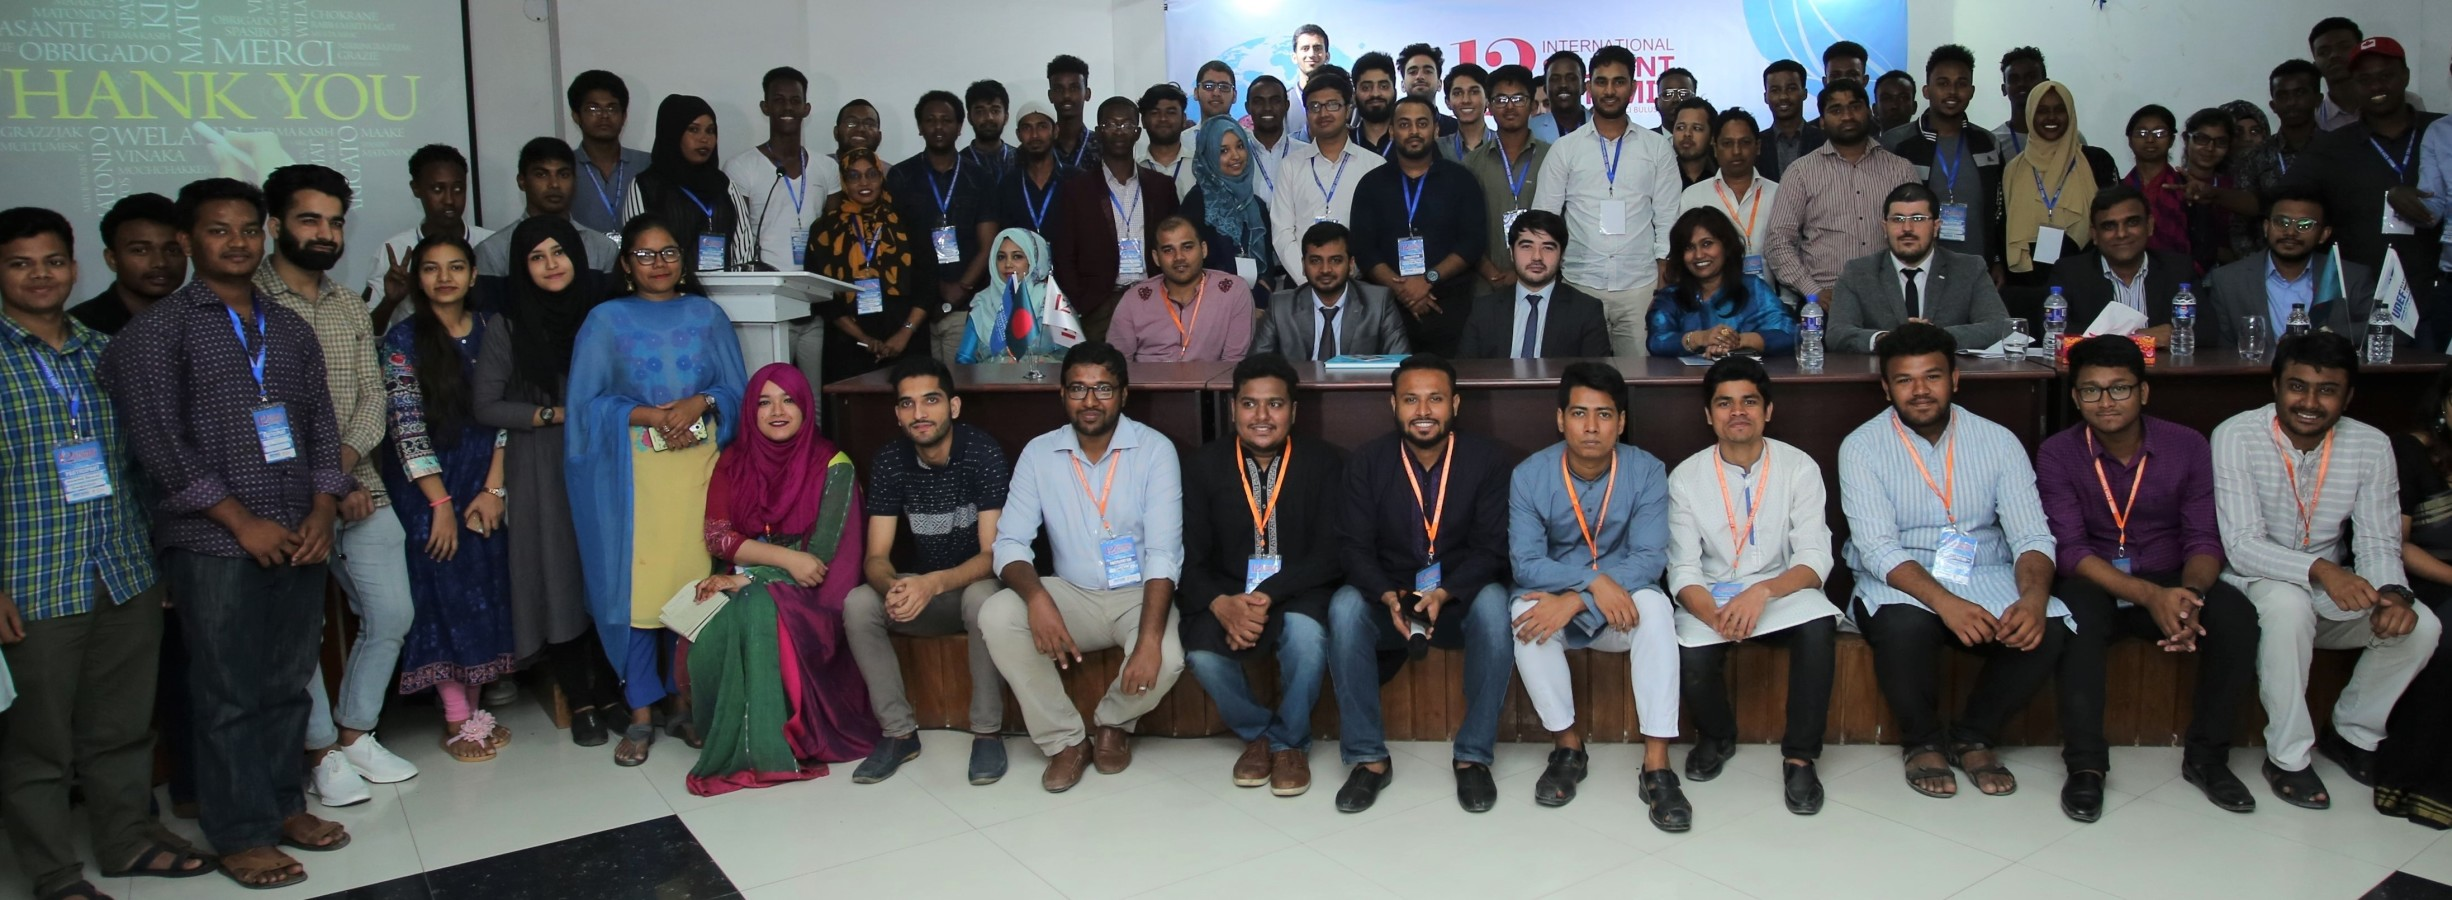 12th International Student Summit, '19 held in Dhaka